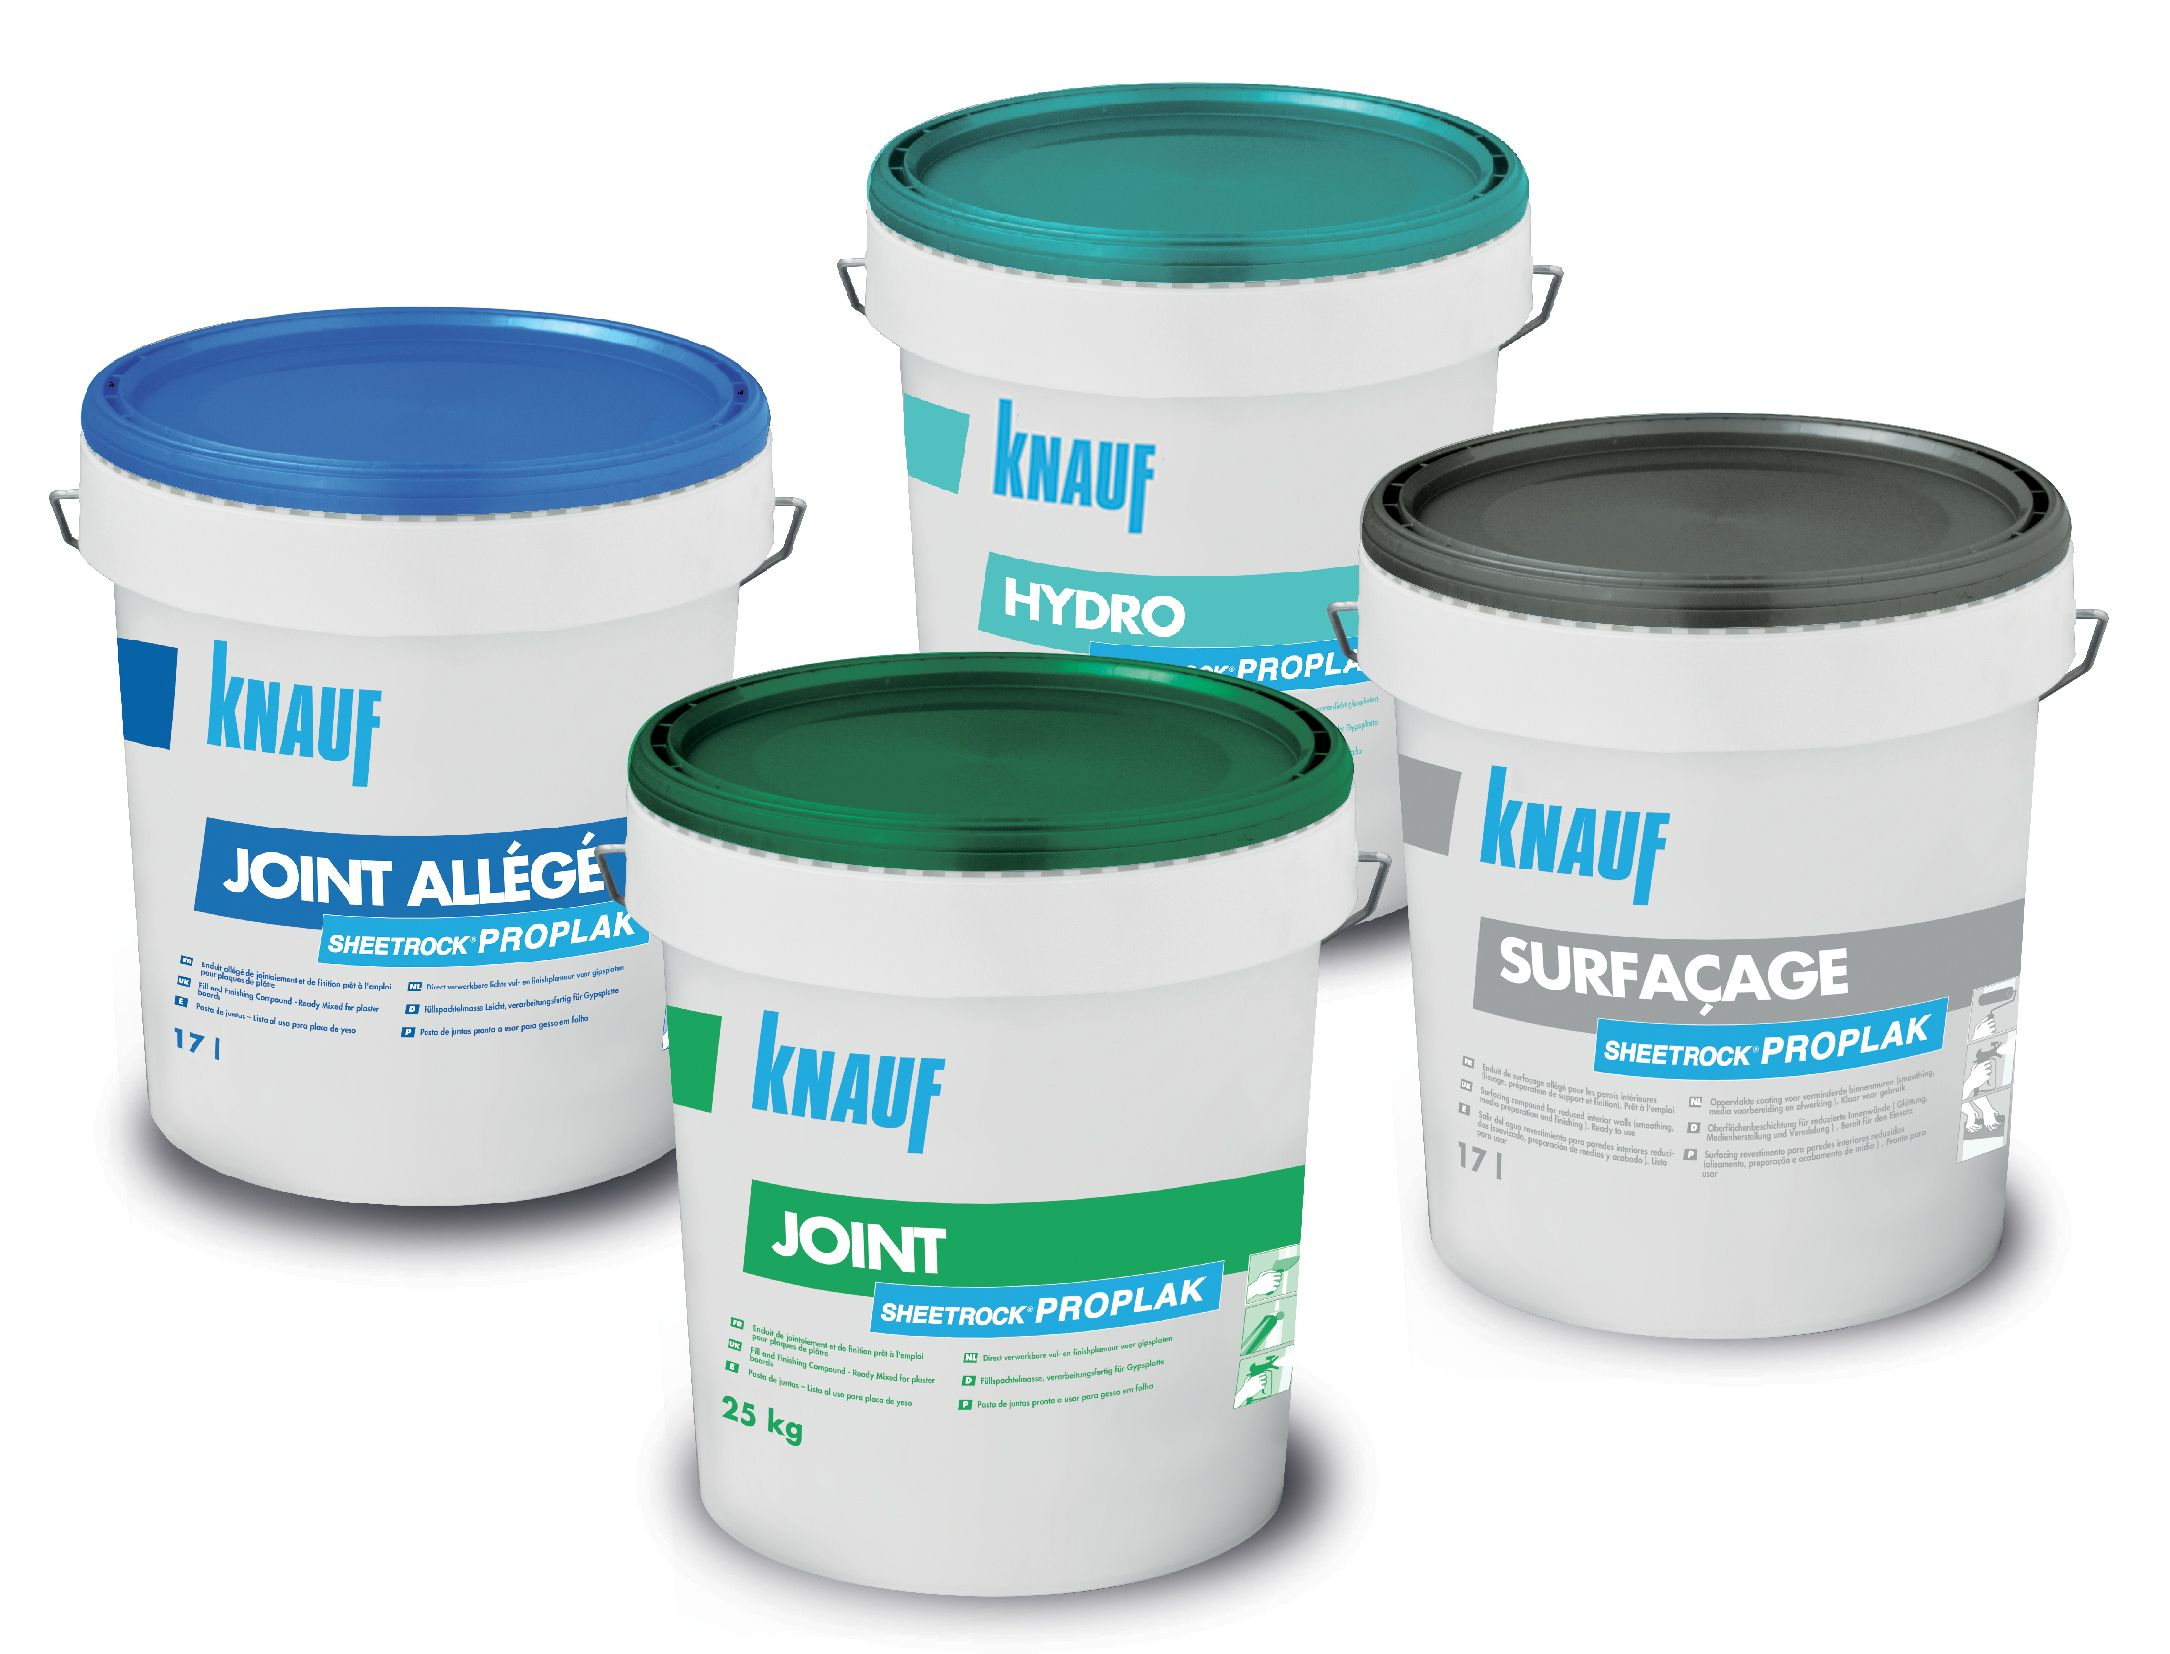 Knauf uniflott construction maison b ton arm for Colle carrelage knauf